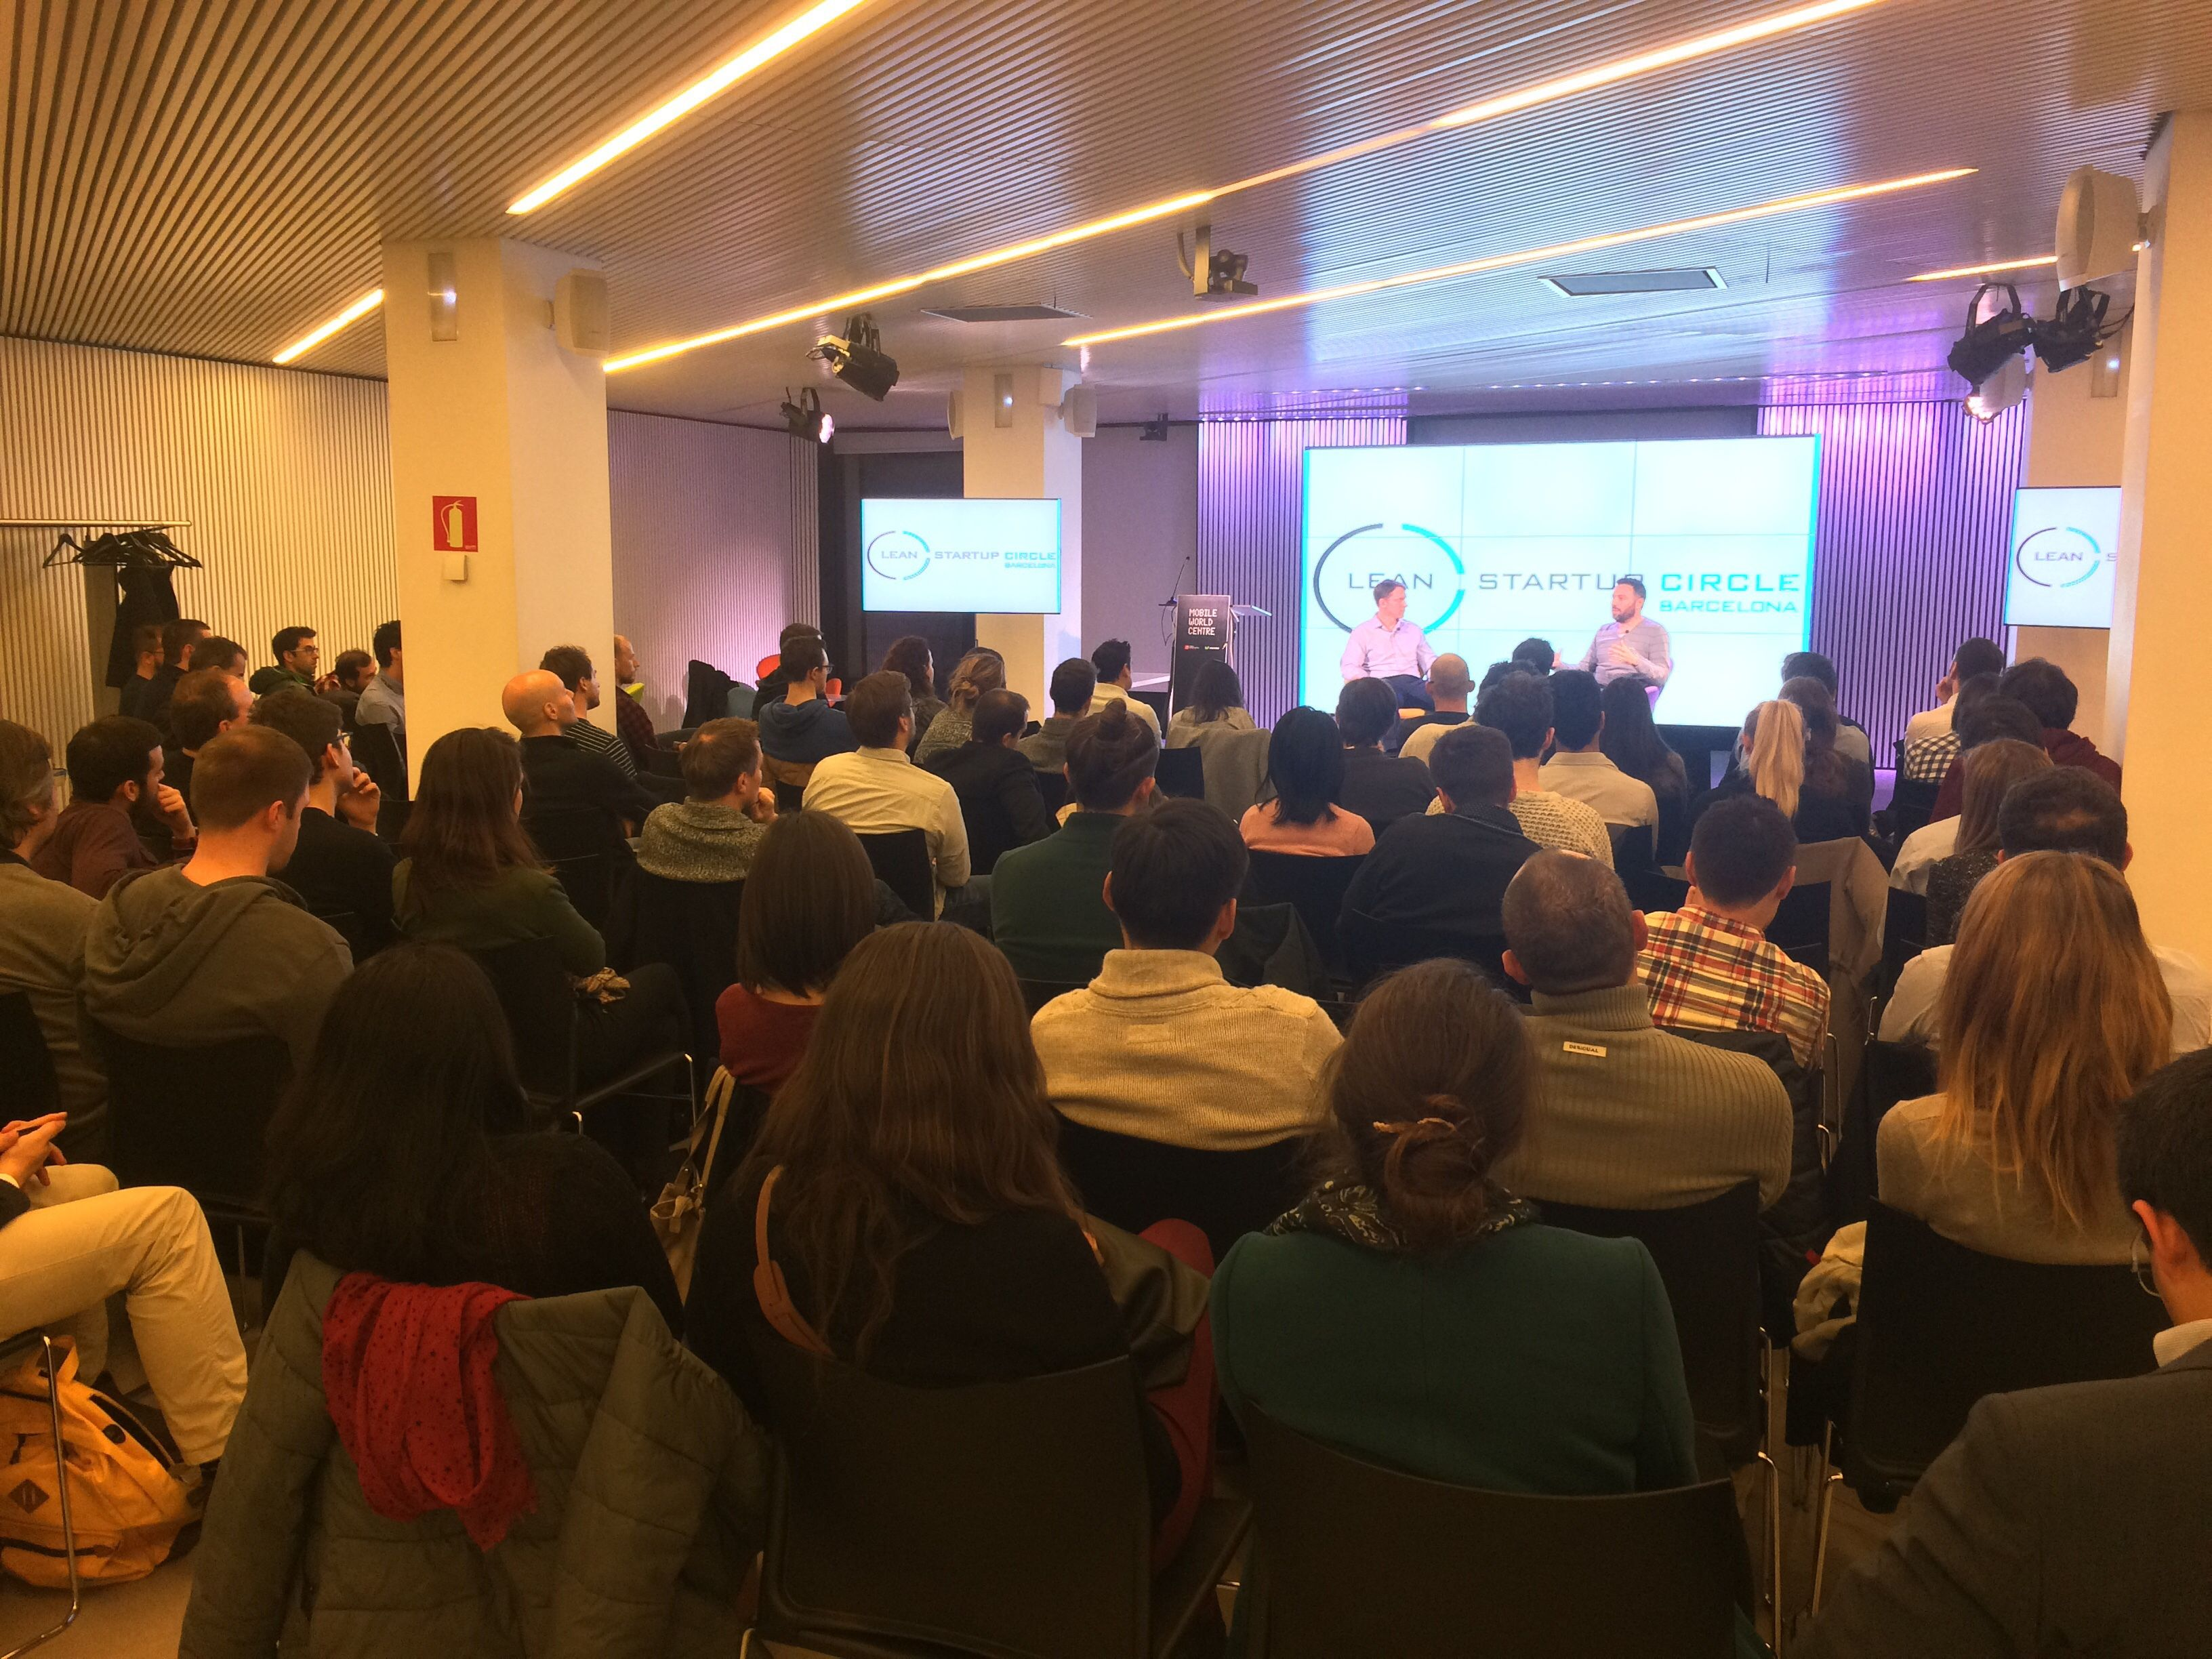 Barcelona Lean Startup Circle